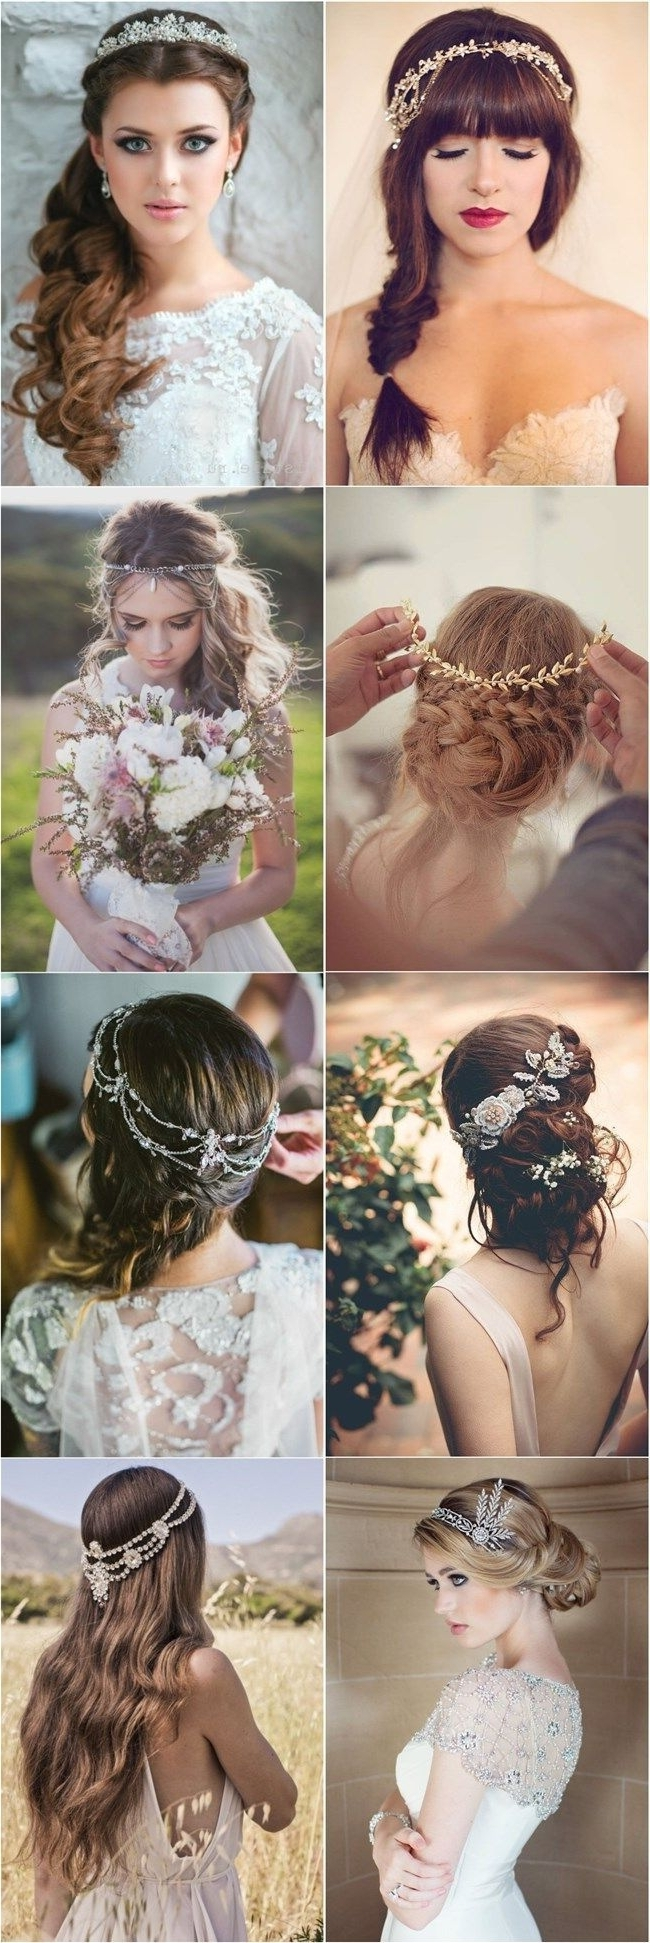 Current Wedding Hairstyles With Headpiece Within 30 Amazing Wedding Hairstyles With Headpiece (View 2 of 15)